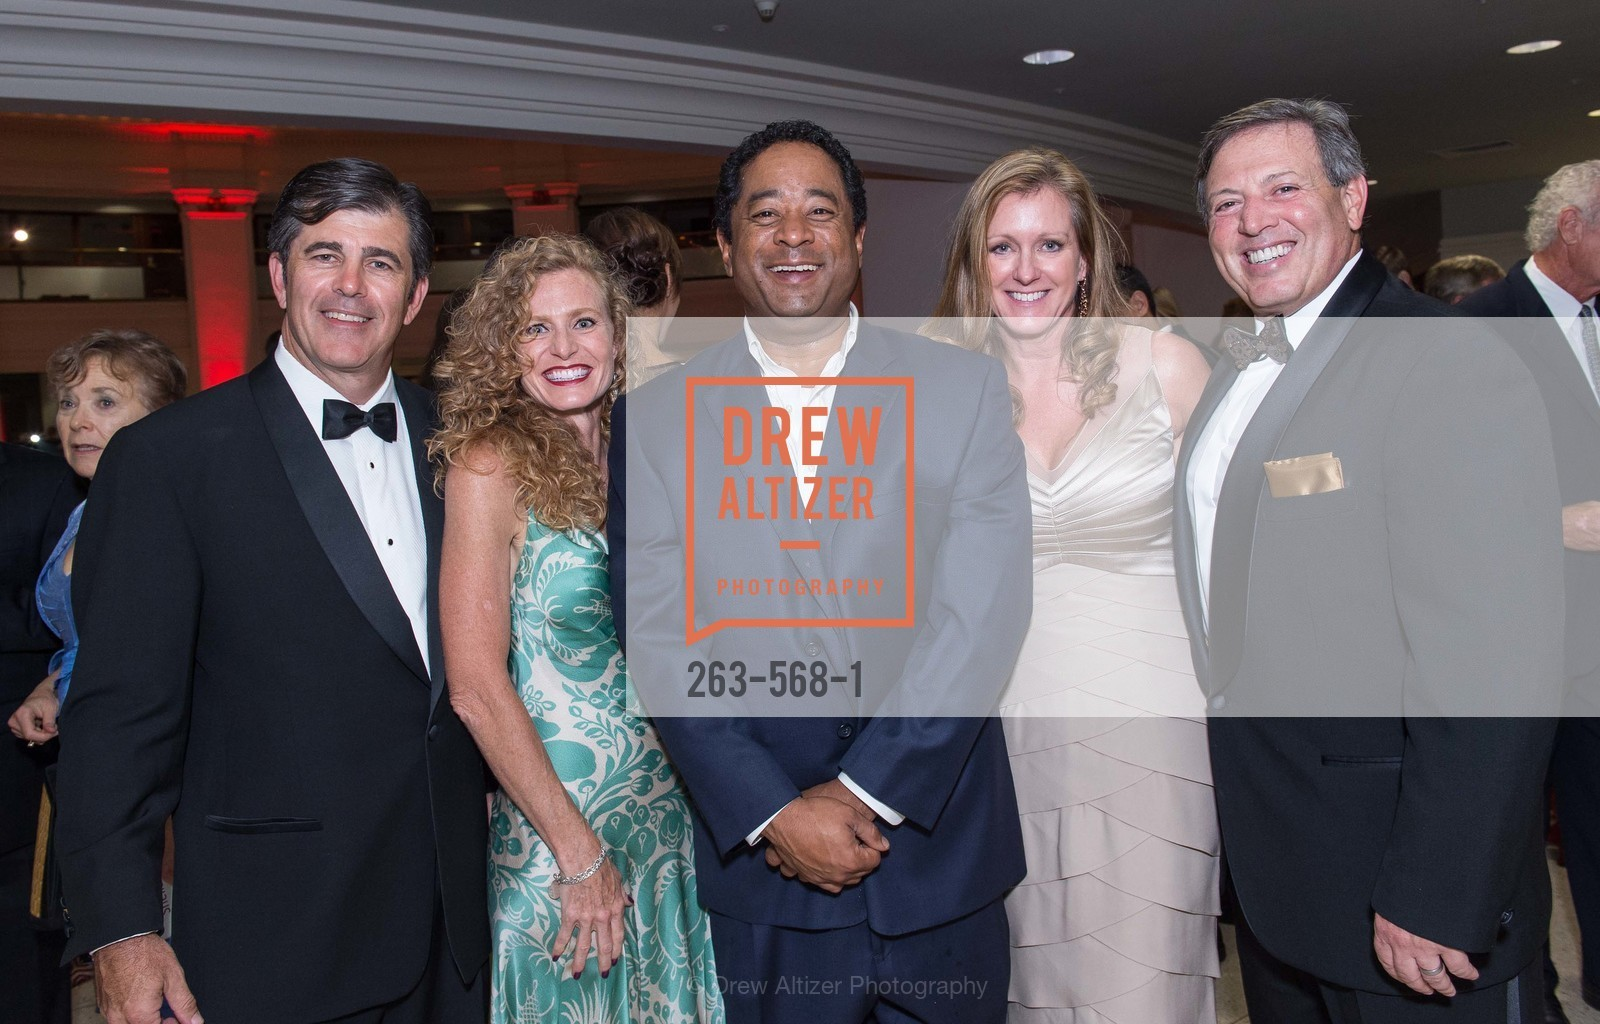 John Protopappas, Laurie Edwards, Melissa Russo, John Russo, SOTHEBY'S  Hosts a Private Viewing of Highlights from the Collection of MRS. PAUL MELLON, US, September 17th, 2014,Drew Altizer, Drew Altizer Photography, full-service agency, private events, San Francisco photographer, photographer california